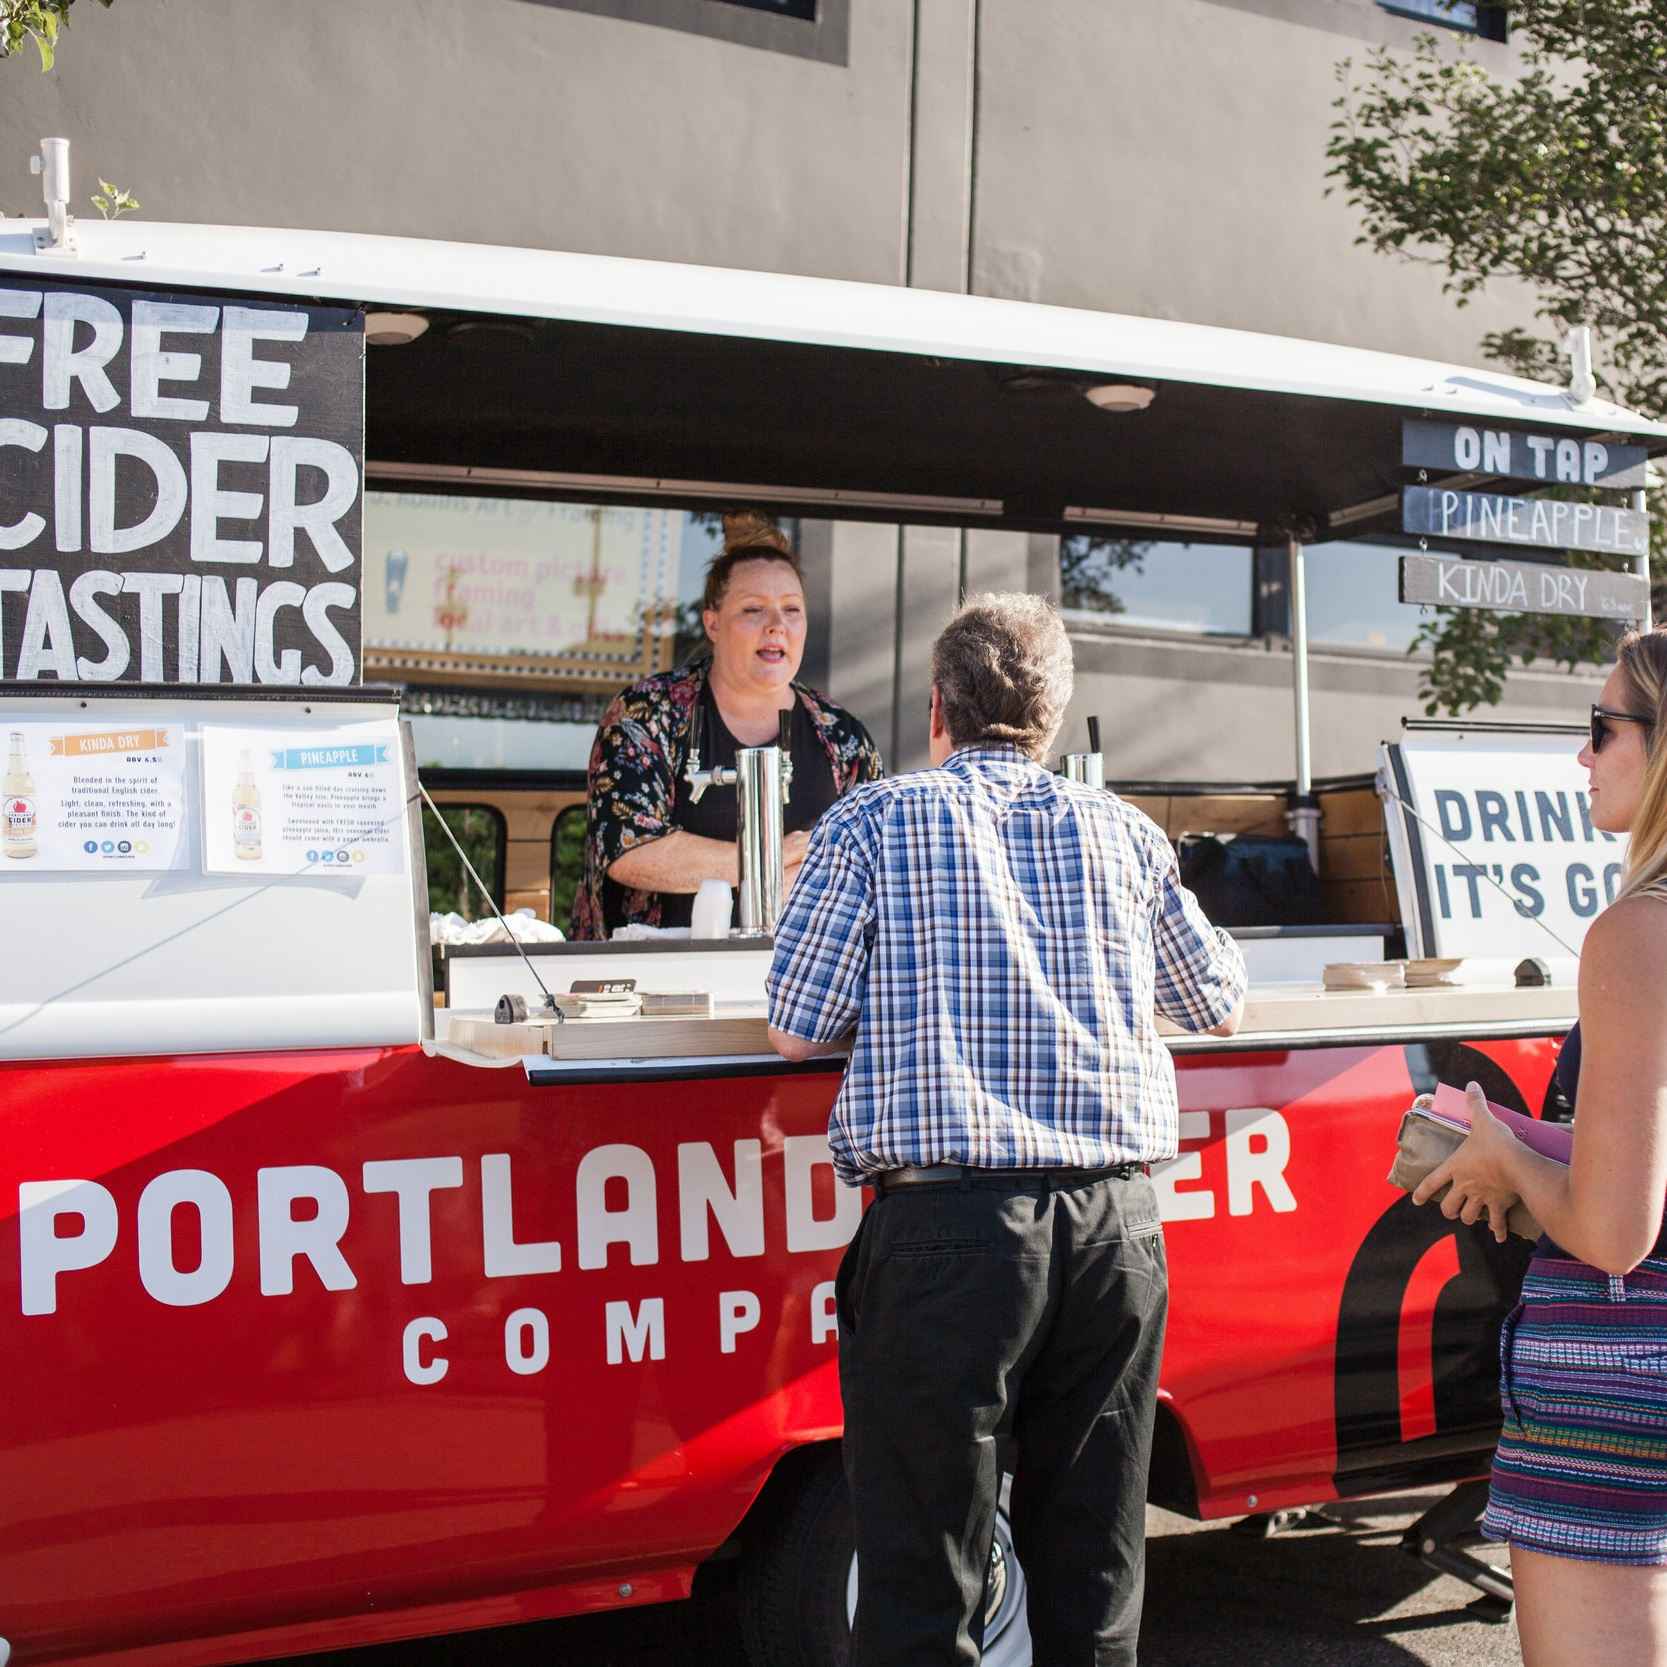 Free cider tastings by Portland Cider Company.